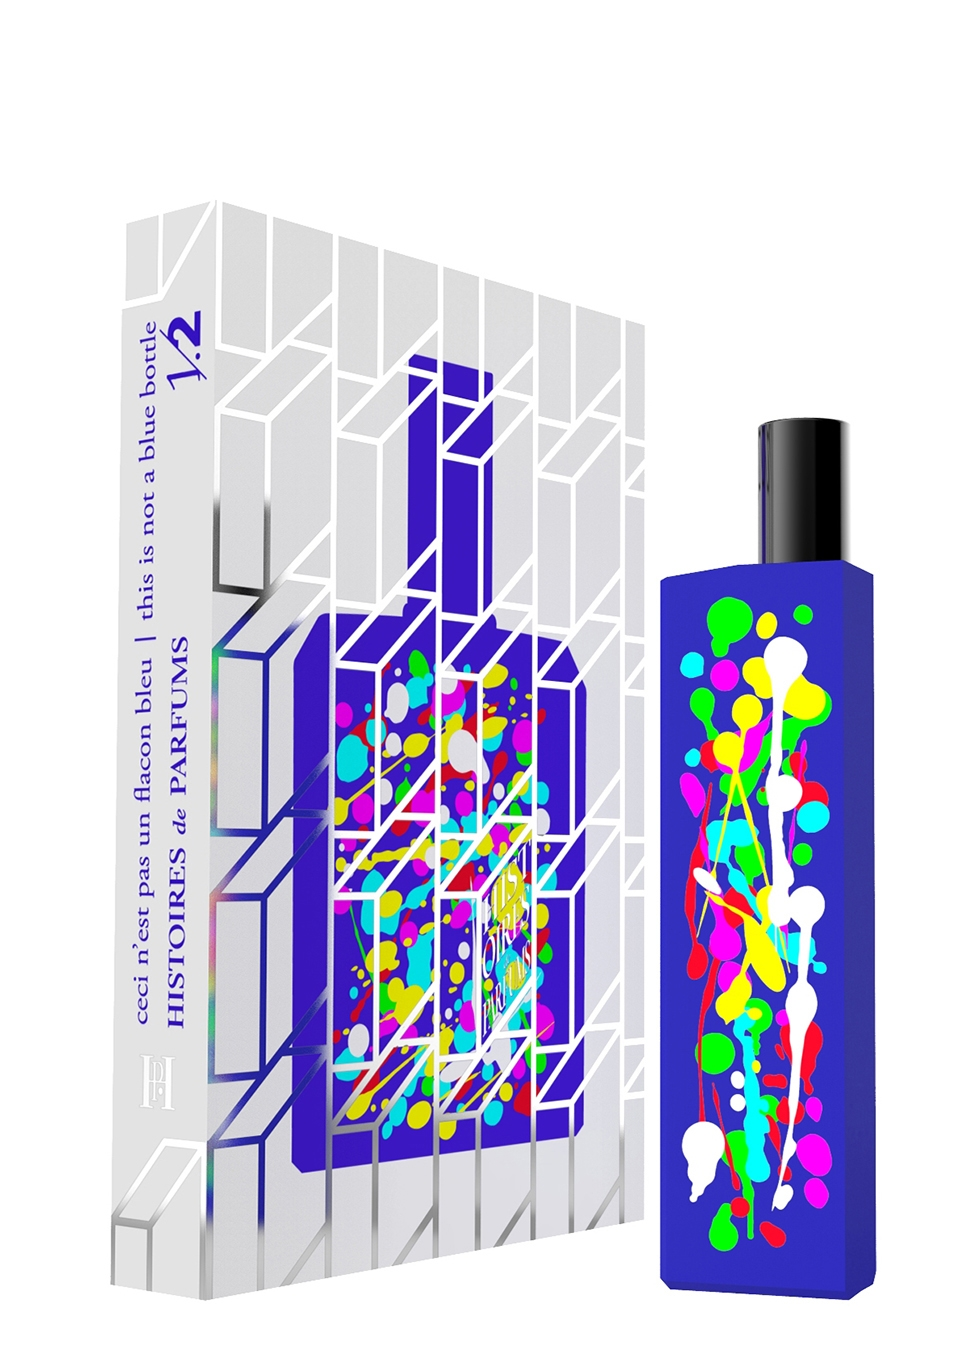 This Is Not A Blue Bottle 1.2 15ml - Histoires de Parfums